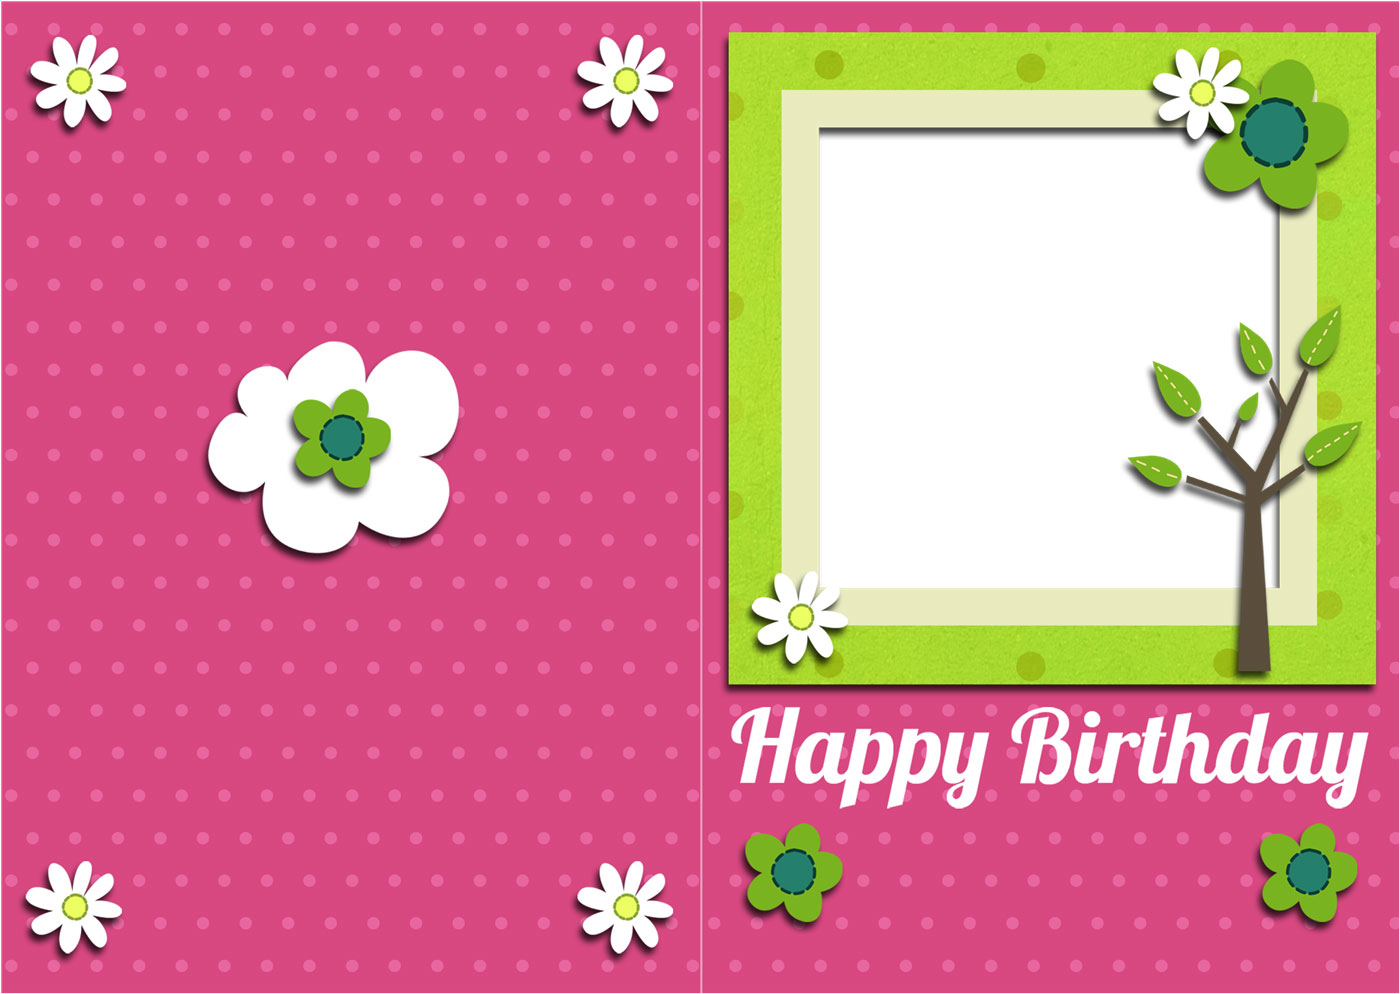 5 Images of Free Printable Birthday Cards Friend